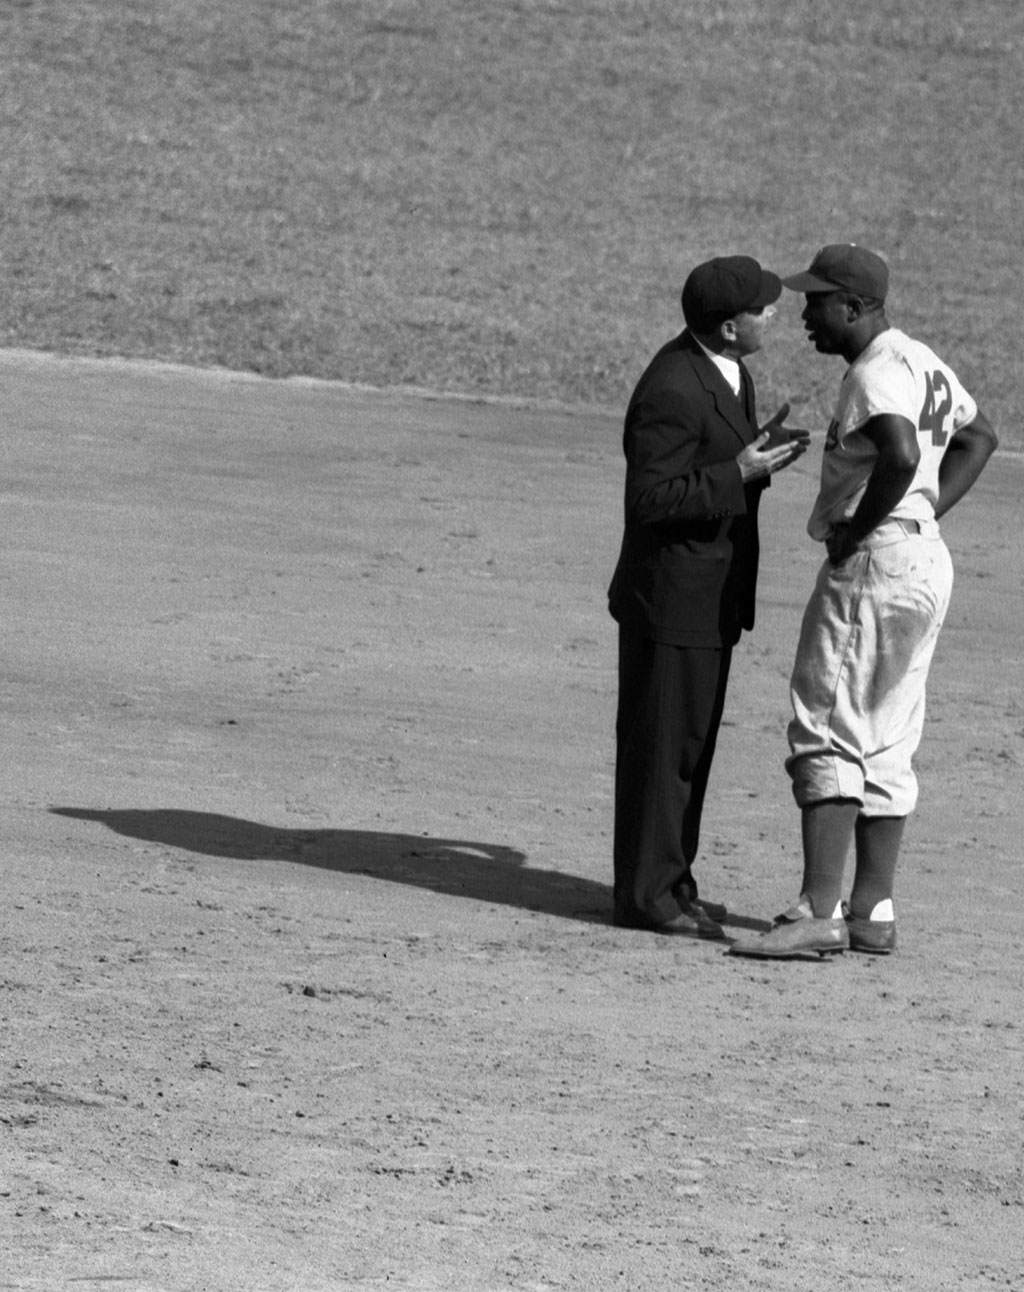 Jackie Robinson argues with an umpire after disagreeing with a call, 1952<br/>Courtesy of the Bettmann Archive, Getty Images